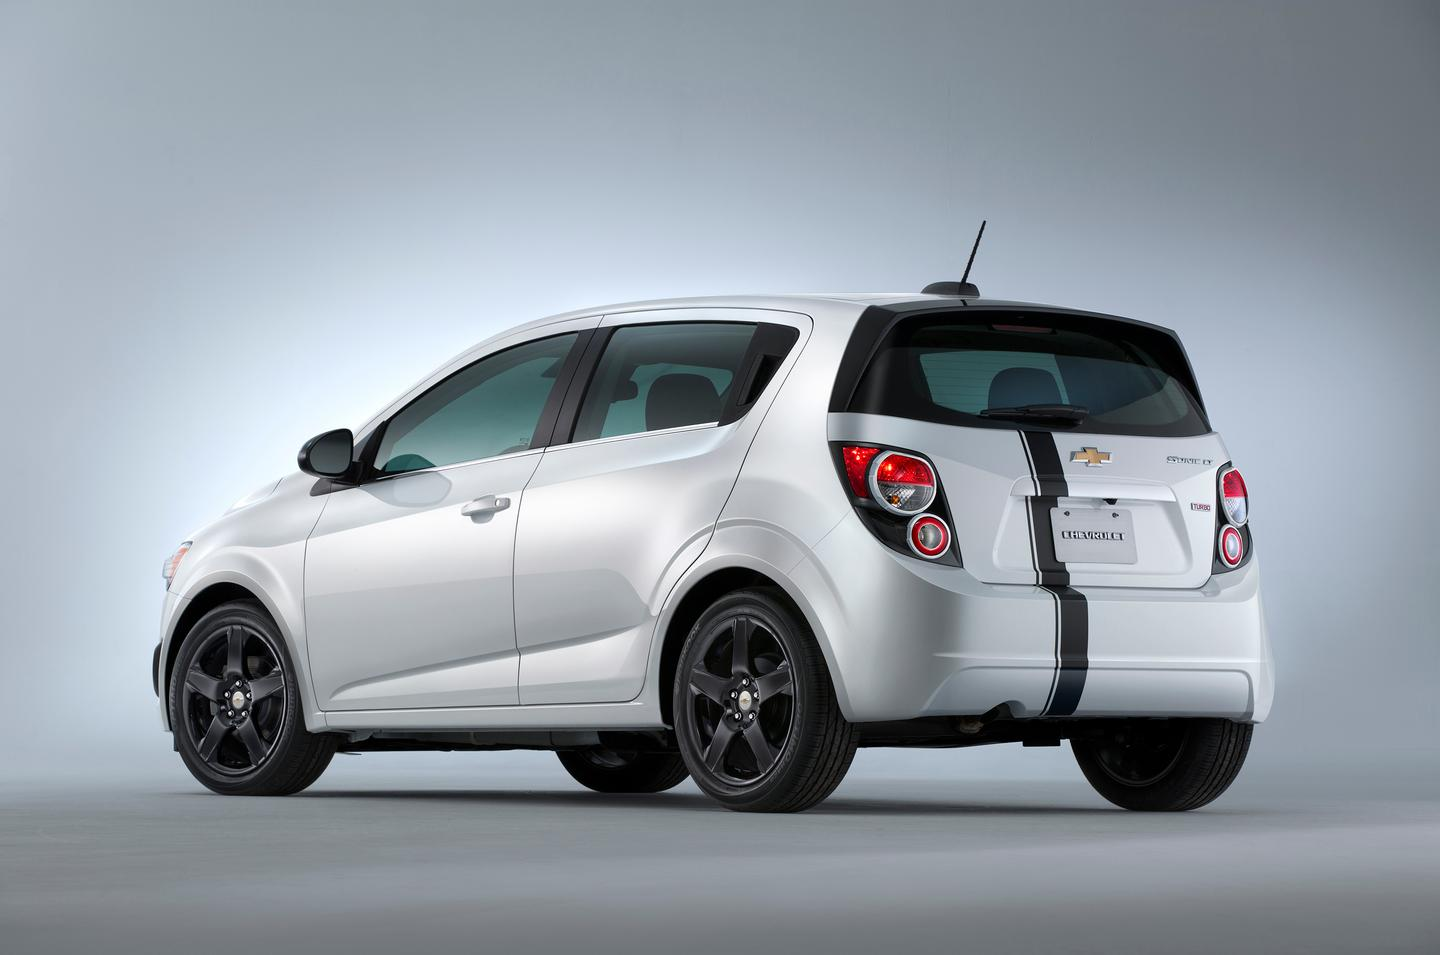 The Chevrolet Sonic Accessories Concept sits on lowered suspension